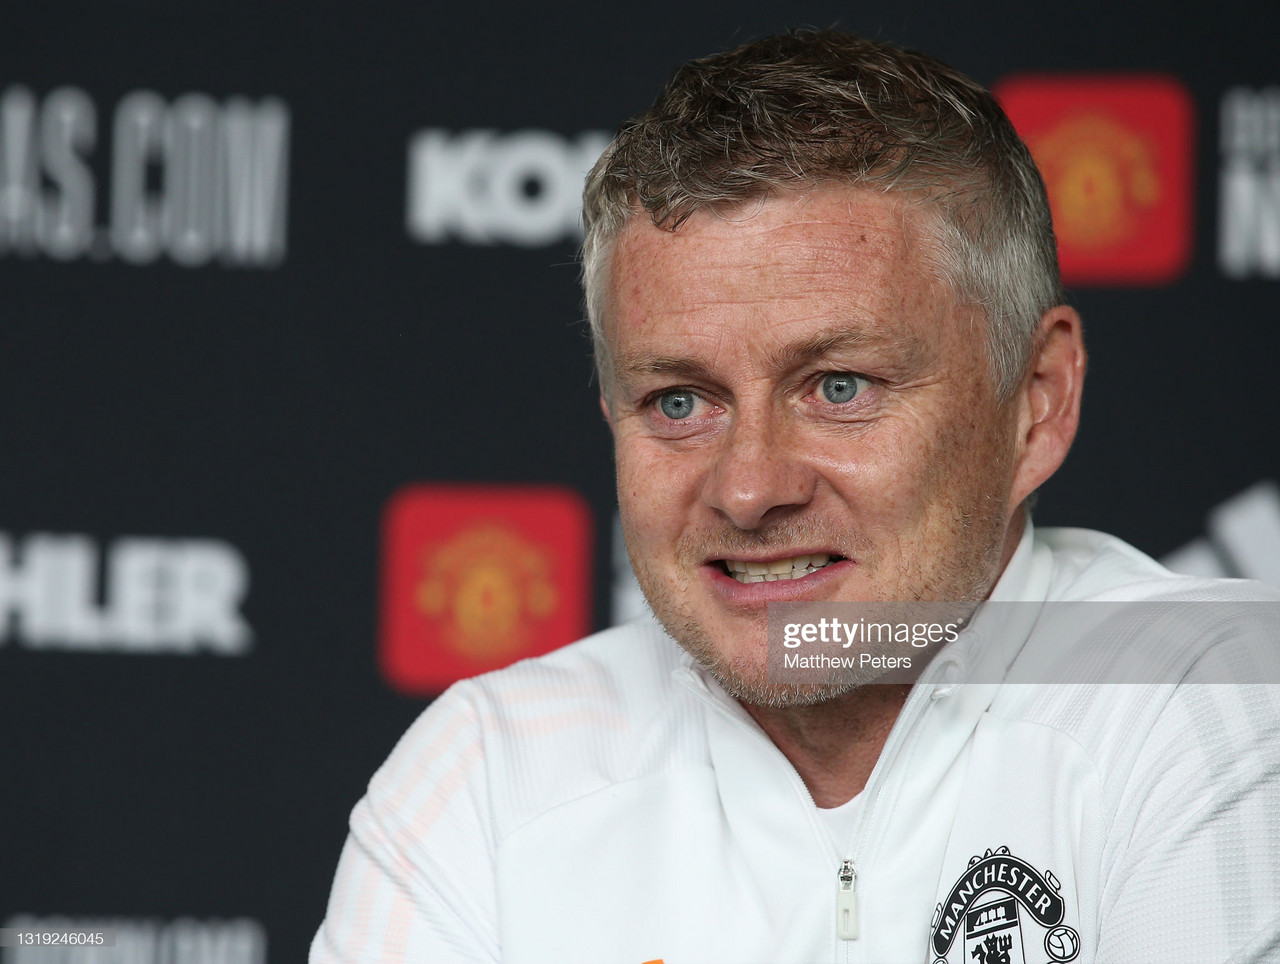 With the Europa League final on the horizon, Solskjaer has decisions to make in last Premier League outing